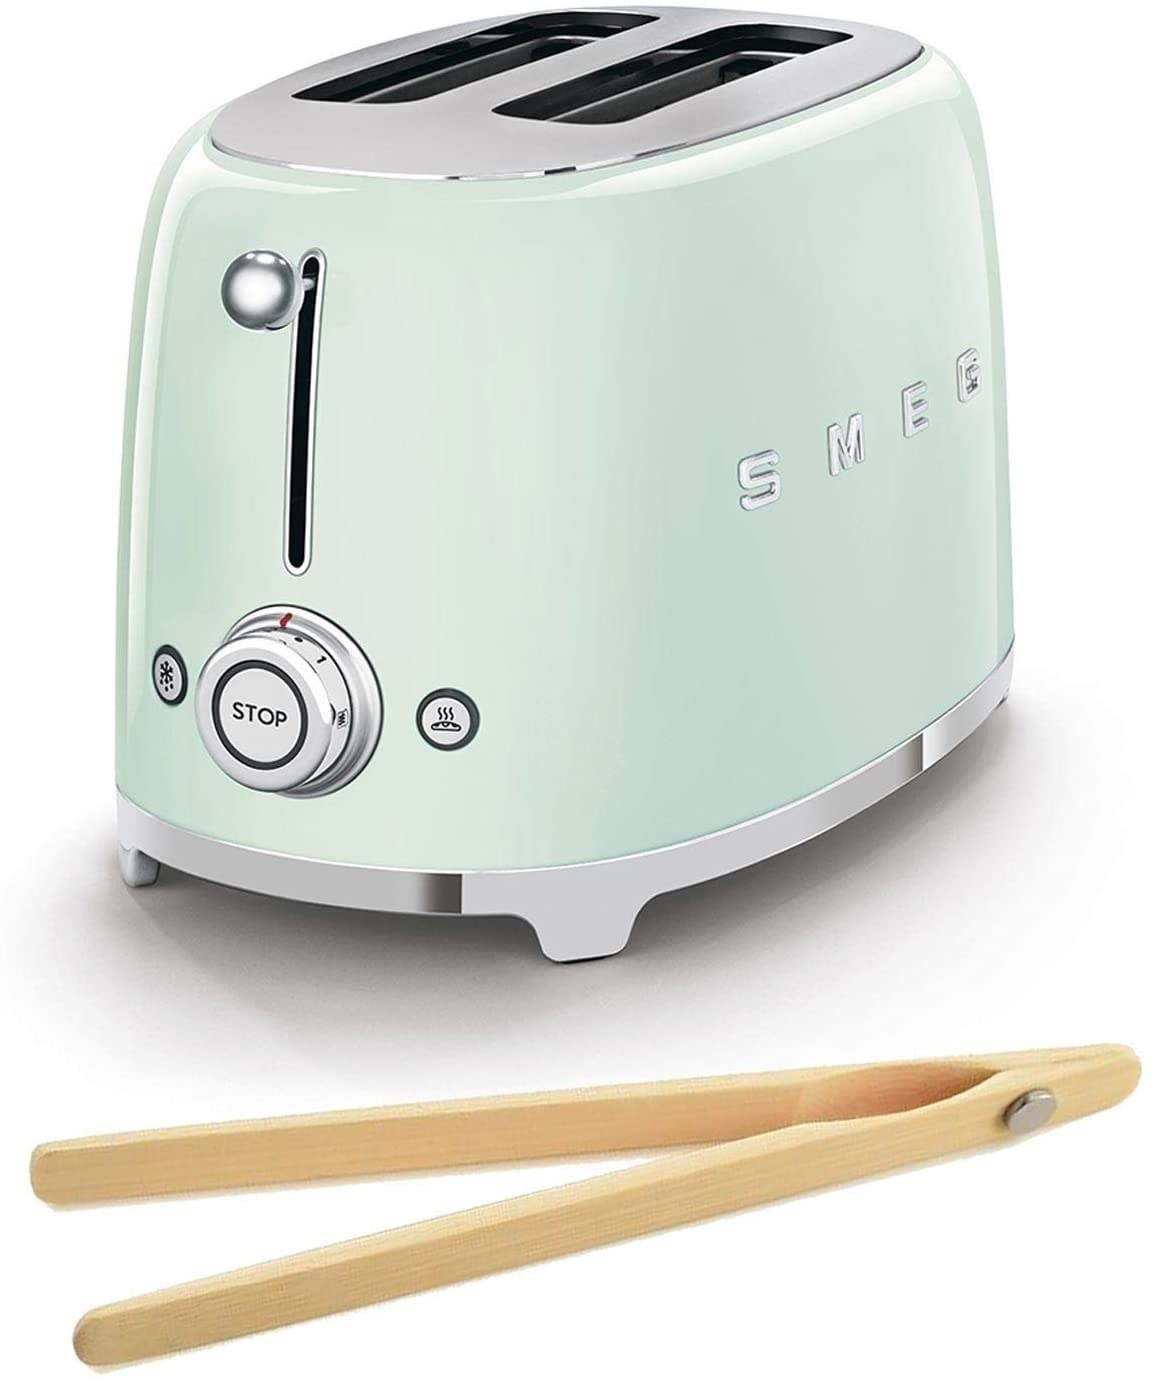 The pastel green toaster and tongs